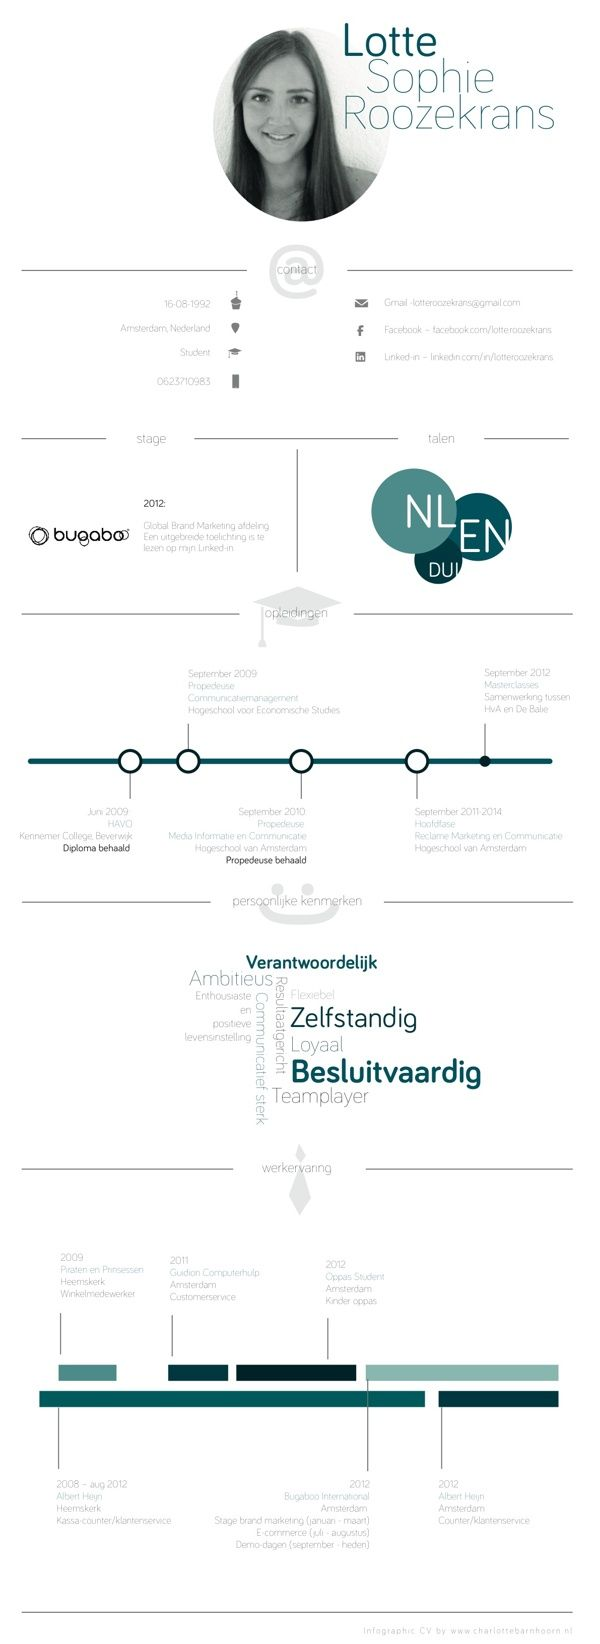 Curriculum Vitae by Lotte Sophie Roozekrans, via Behance